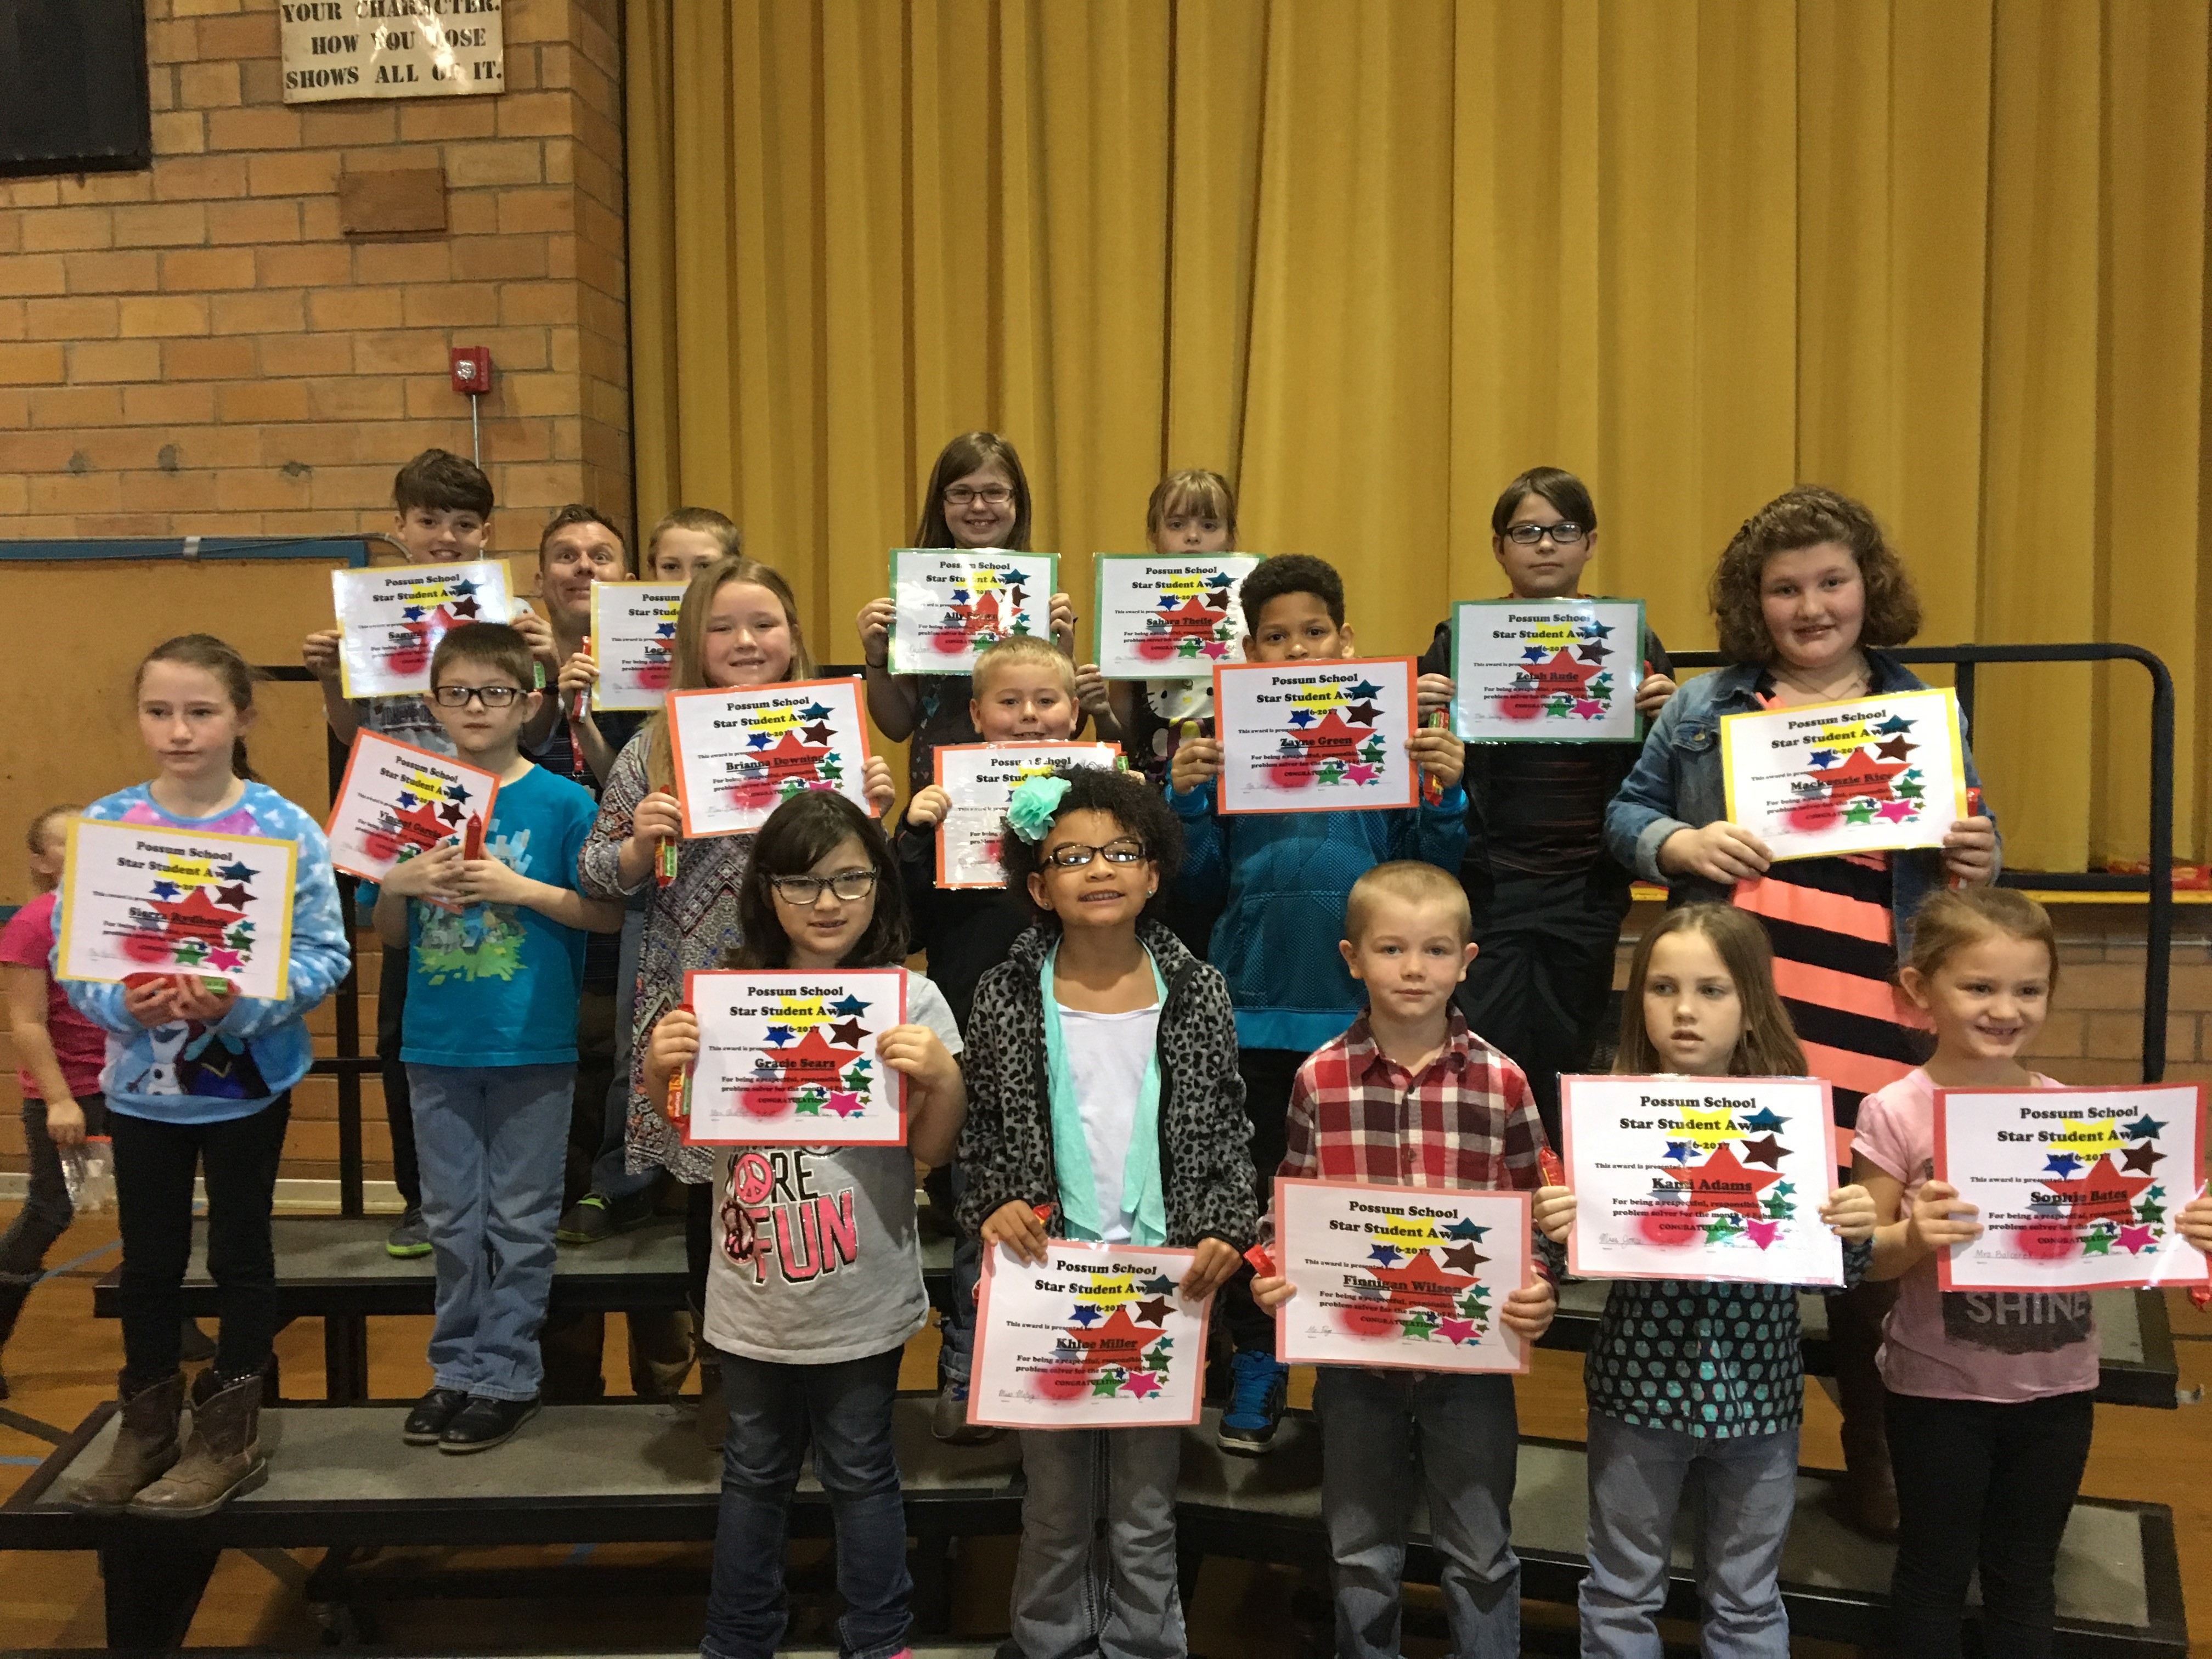 February Star Students - Elementary